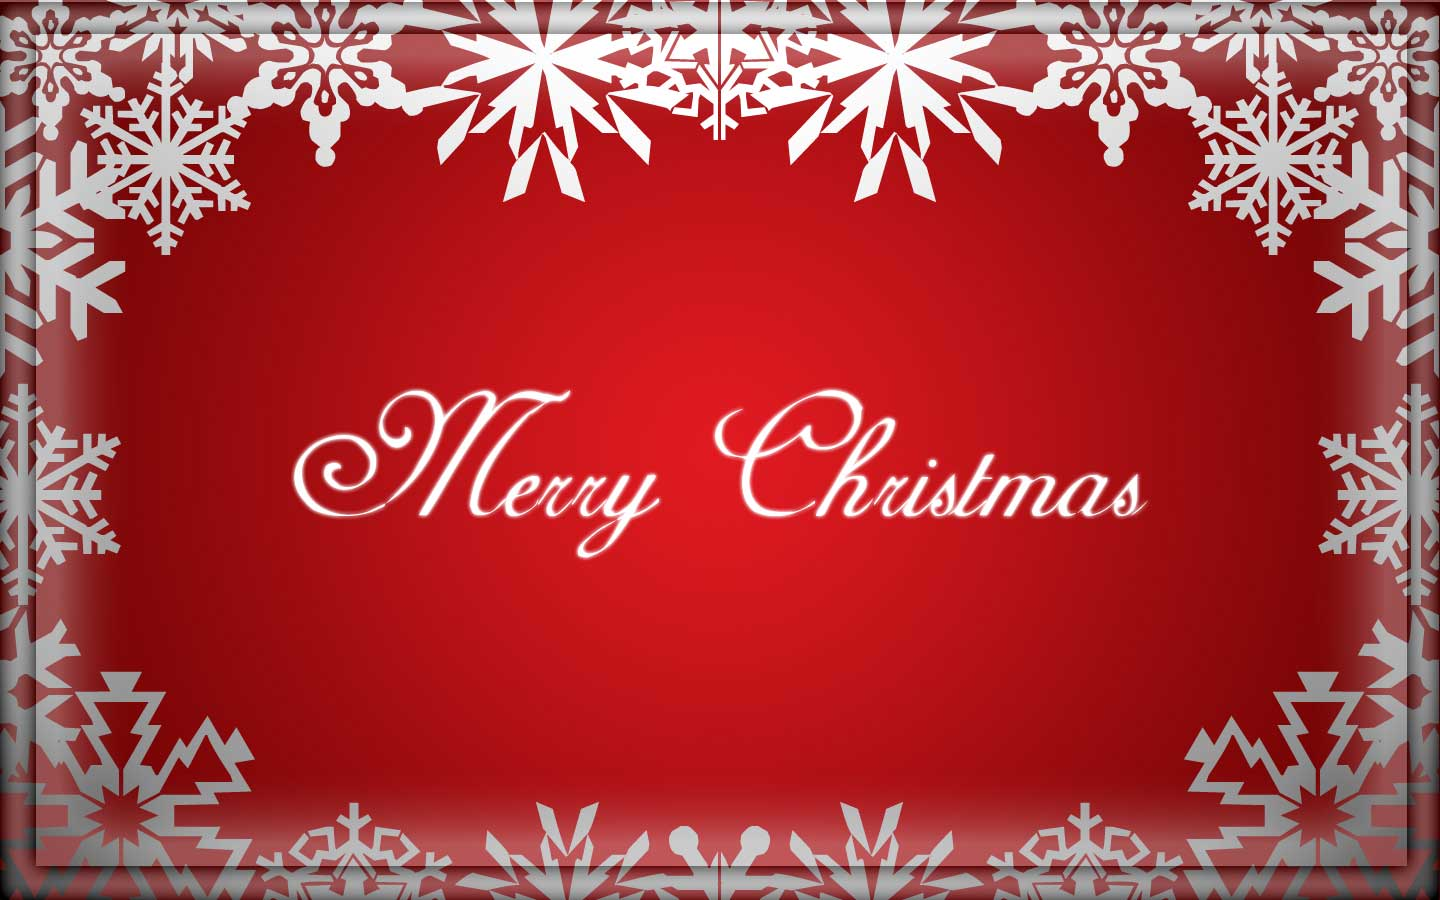 Merry Christmas Wallpapers Wallpapers9 1440x900